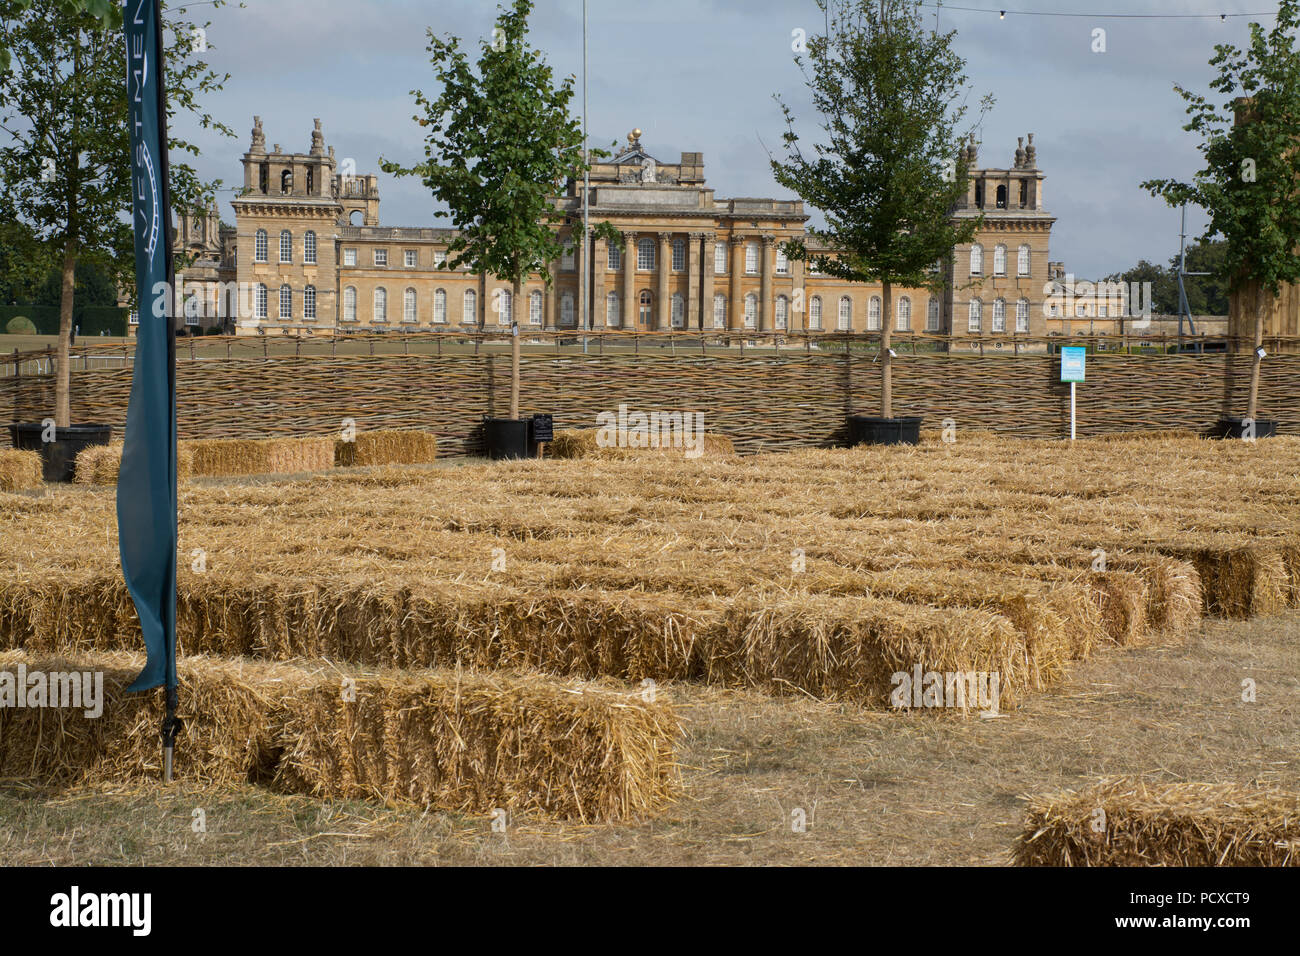 Blenheim Palace, Oxfordshire, UK. 4th August, 2018. Thousands of people went to the Countryfile Live show in the beautiful grounds of Blenheim Palace on a hot, sunny day. There were opportunities to see and meet Countryfile presenters. There were also lots of demonstrations and exhibits such as countryside crafts and livestock to visit. - Stock Image